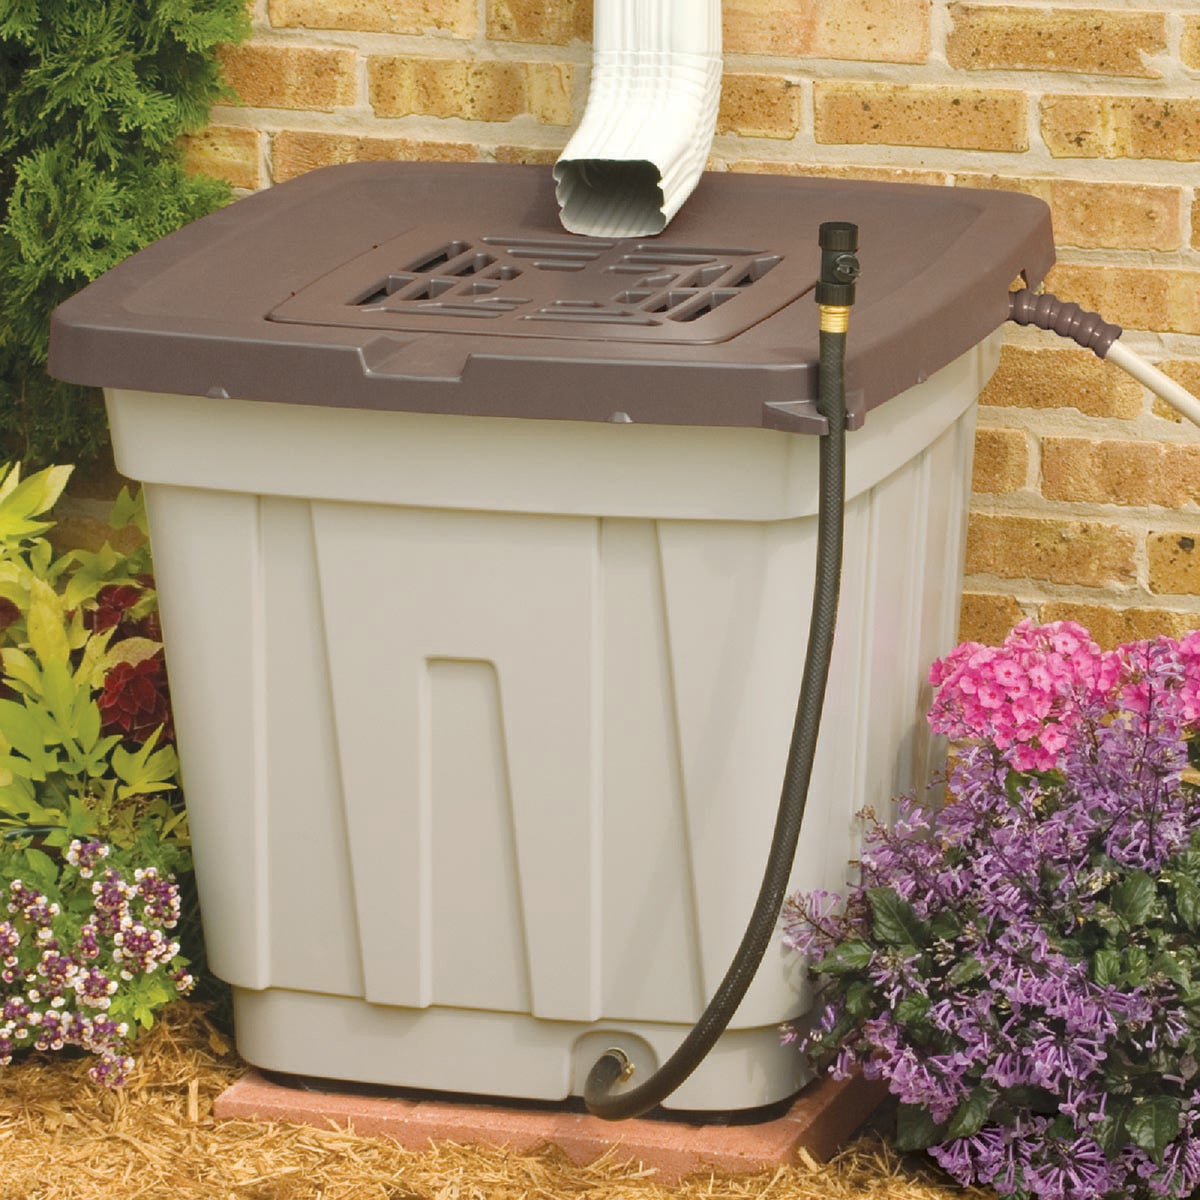 50 GAL RAIN BARREL